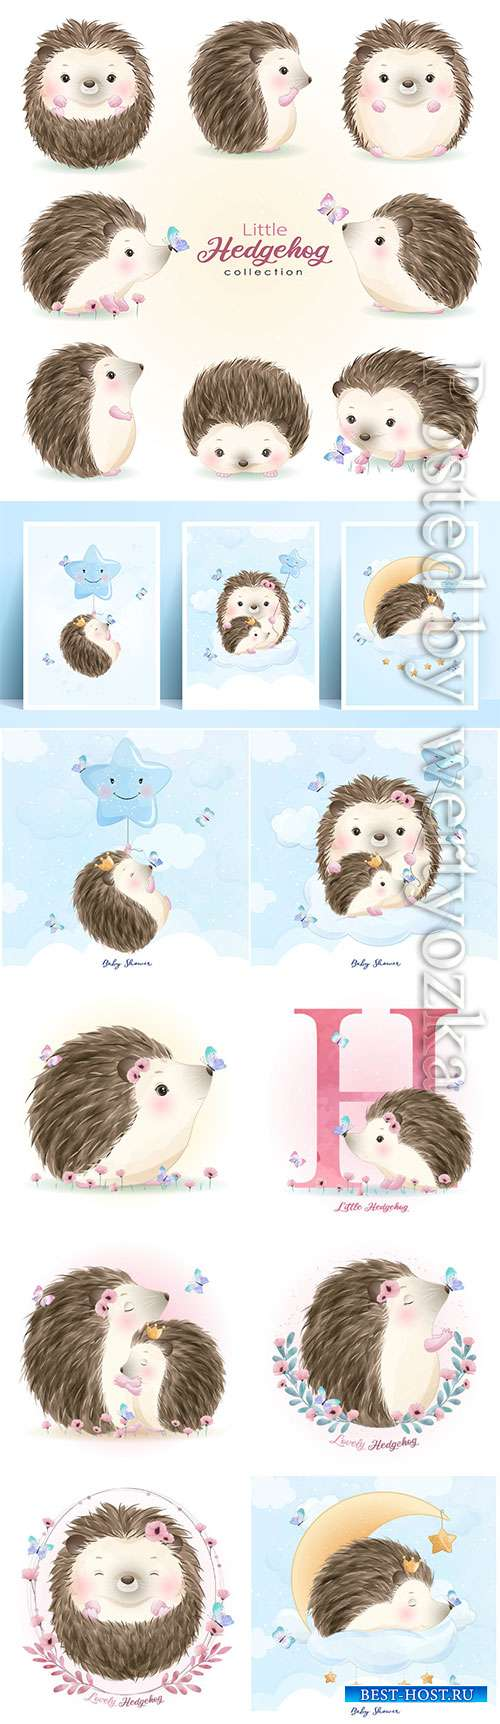 Cute doodle hedgehog set with watercolor vector illustration